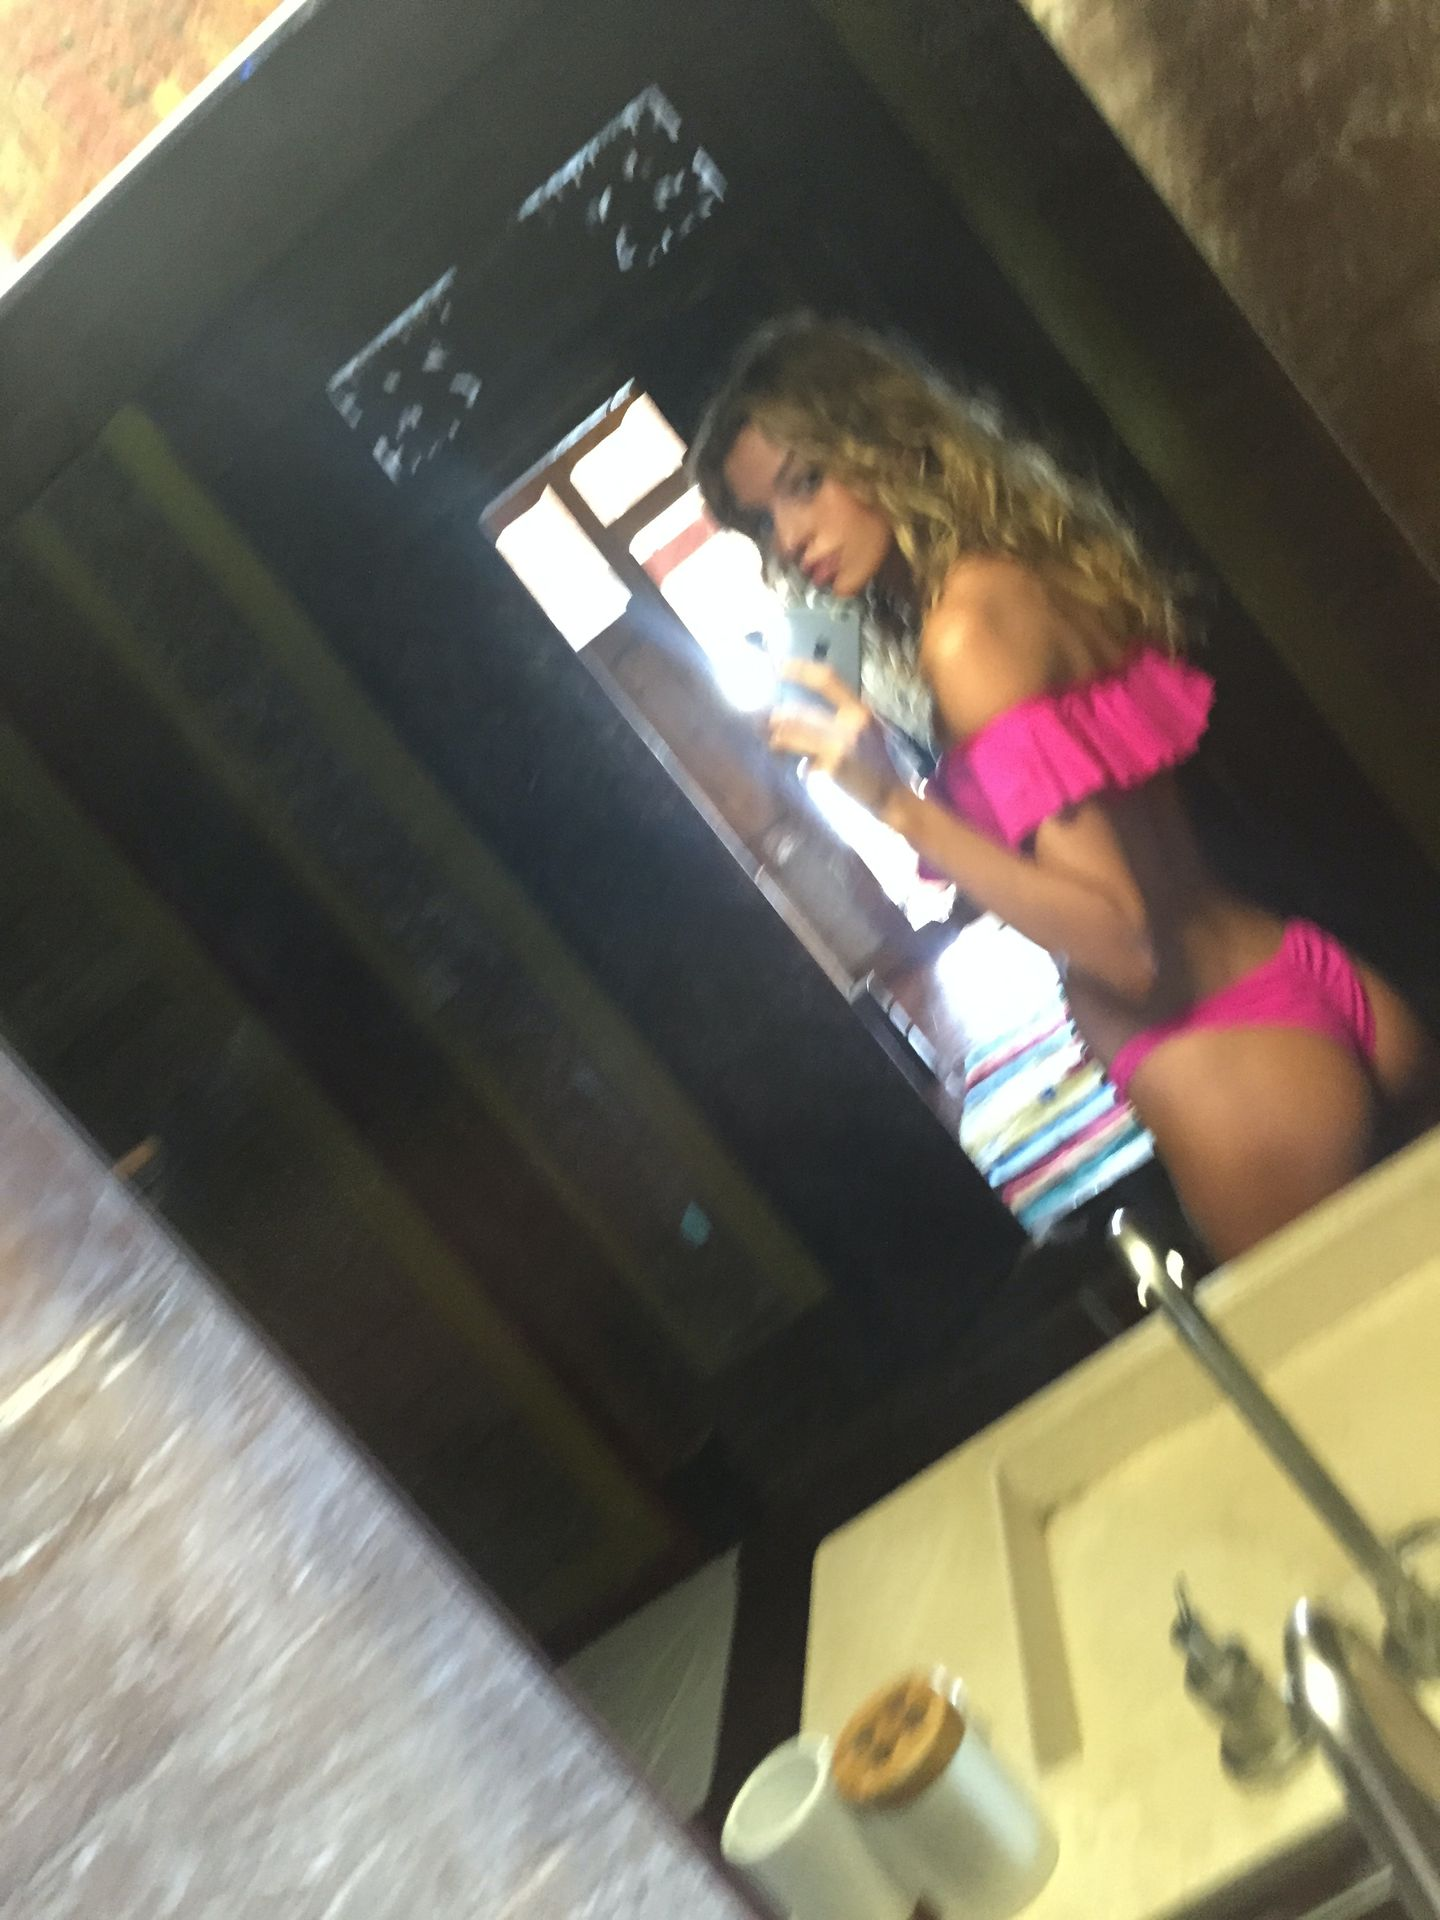 Stella Maxwell Nude Leaked The Fappening 0053